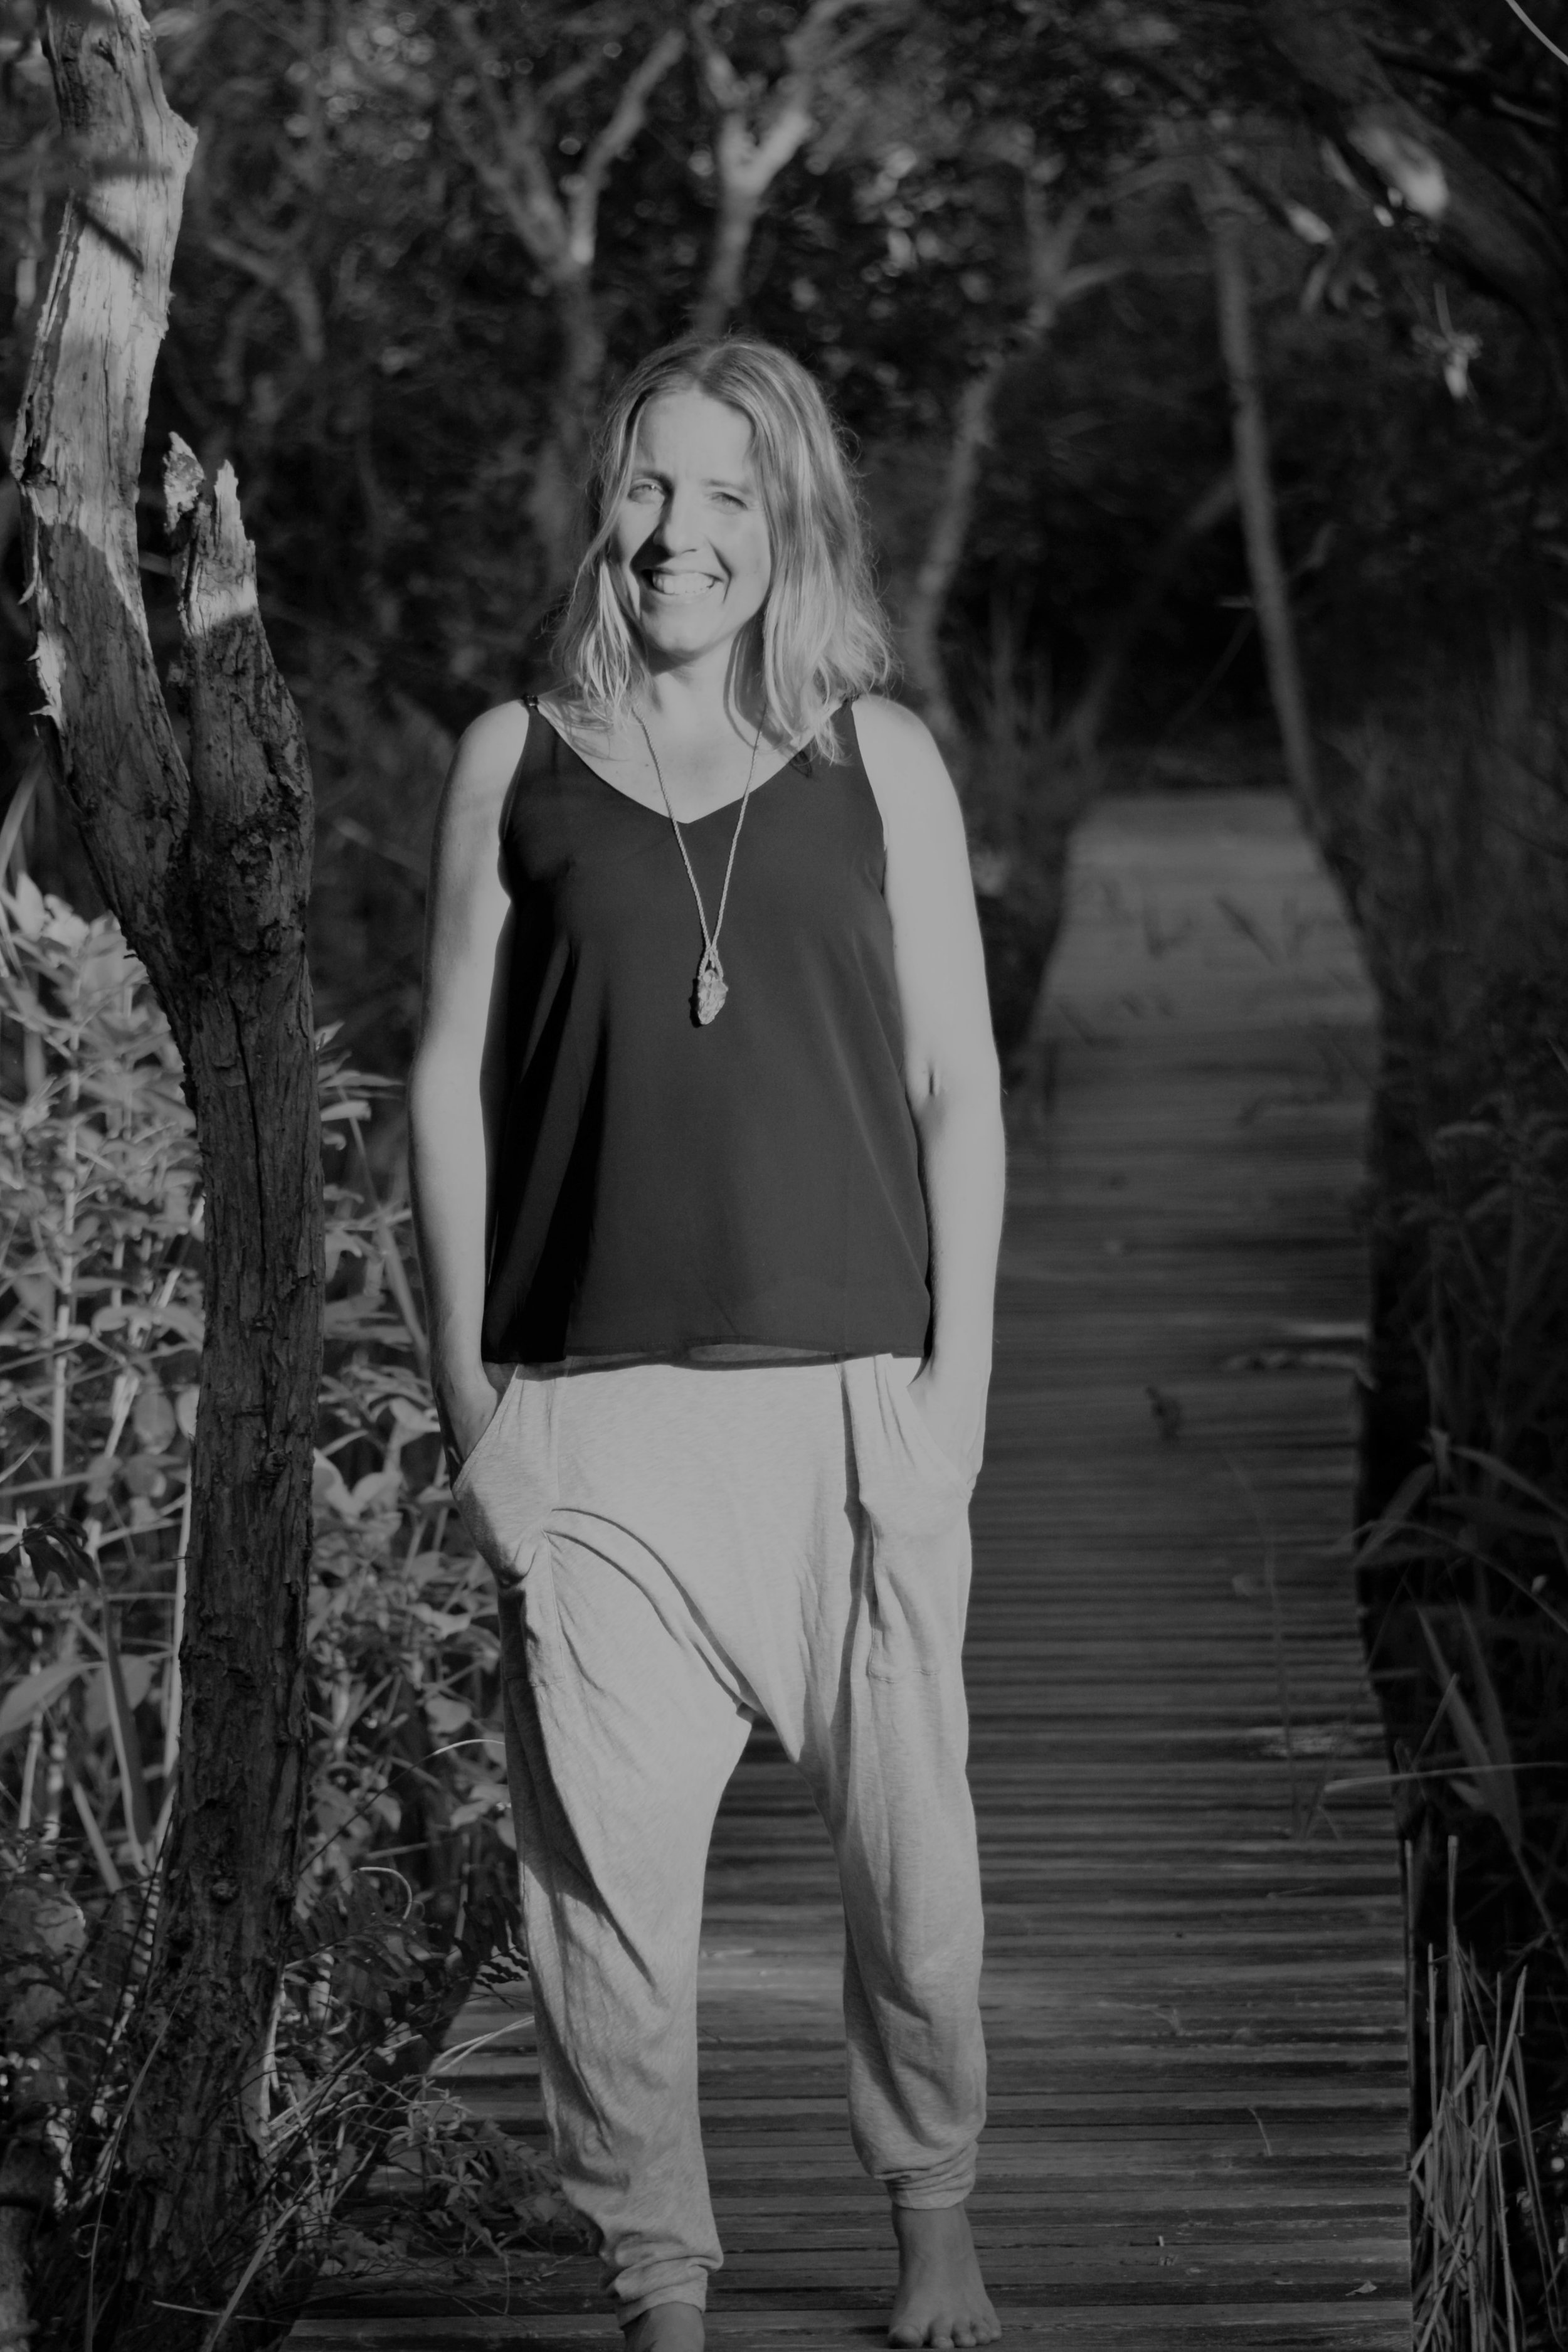 """The Turning Point - In 2014 in the gorgeous town of Byron Bay (where I had moved 6 years earlier as I sensed it held the key to my healing) a beautiful, older male colleague asked me the golden question:""""Are you ok Em?""""That question was my unraveling. My complete undoing. But also my acknowledging - I was not ok.Gifted with the time to rest and reflect I knew things had to change and I was the only one who could change it. A vegetarian since the age of 15, daily yoga practitioner and non-drinker meant to others I appeared the epitome of health and physically, I was.But my true wellbeing came not from anything external - it came from journeying inward. My yoga practice was preparing me well - it gave me the courage to face it.It is the struggles that I overcame using the tools and practices of yoga and meditation that have fueled my passion to support other women to reclaim their connection to themselves and all that is sacred.Head to my yoga page to find out about classes in the Northern Rivers or to my coaching page to see how I can support you via 1:1 coaching or group coaching (coming Jan 2019) wherever you are in the world.I hope to connect with you soon whatever challenges you are facing - know that there is a simpler and easier way of being.Namaste x"""